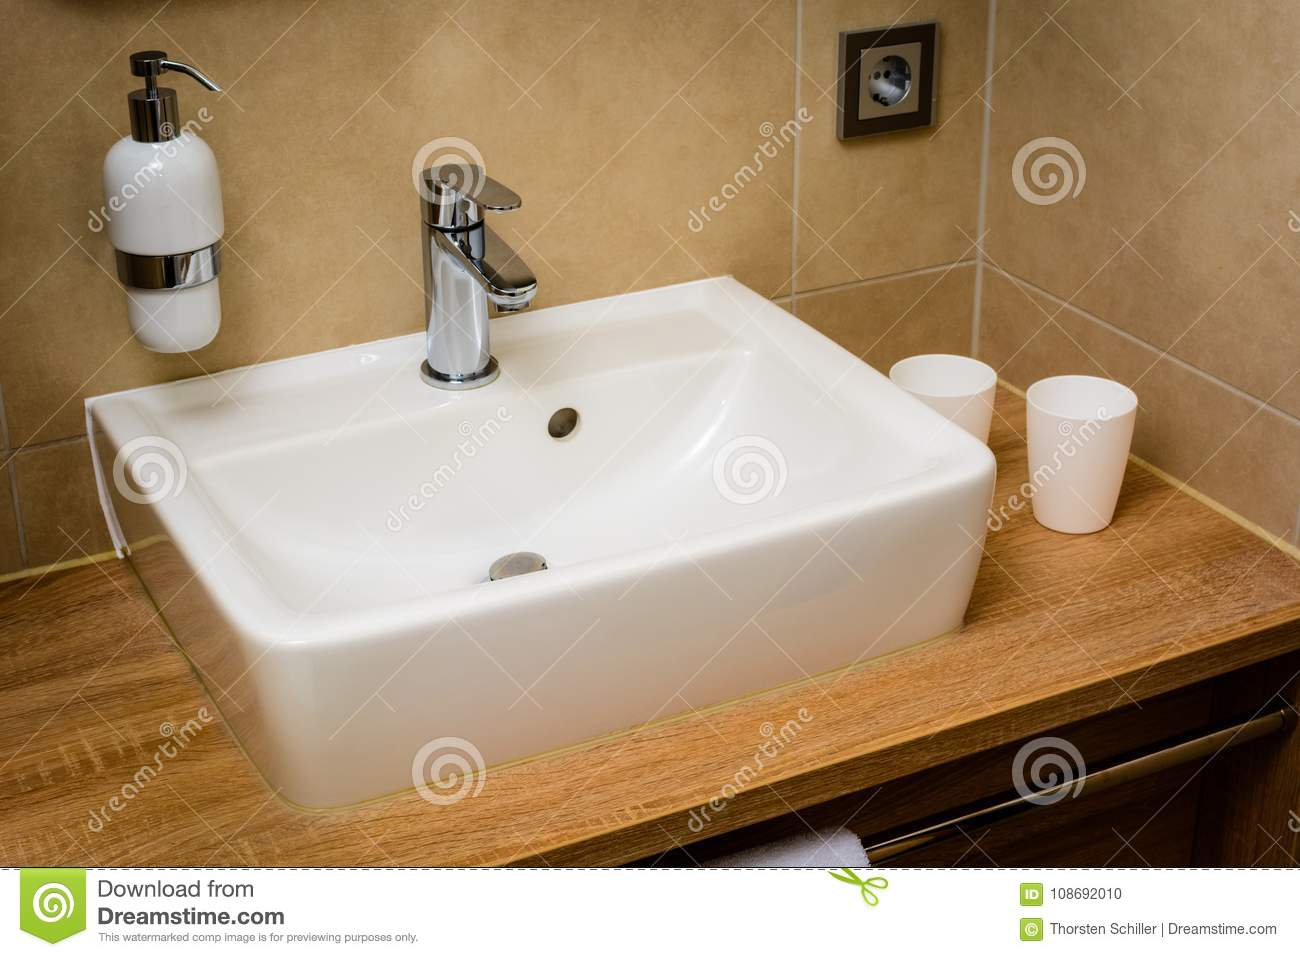 Modern Washroom with sink stock photo. Image of fixtures - 108692010